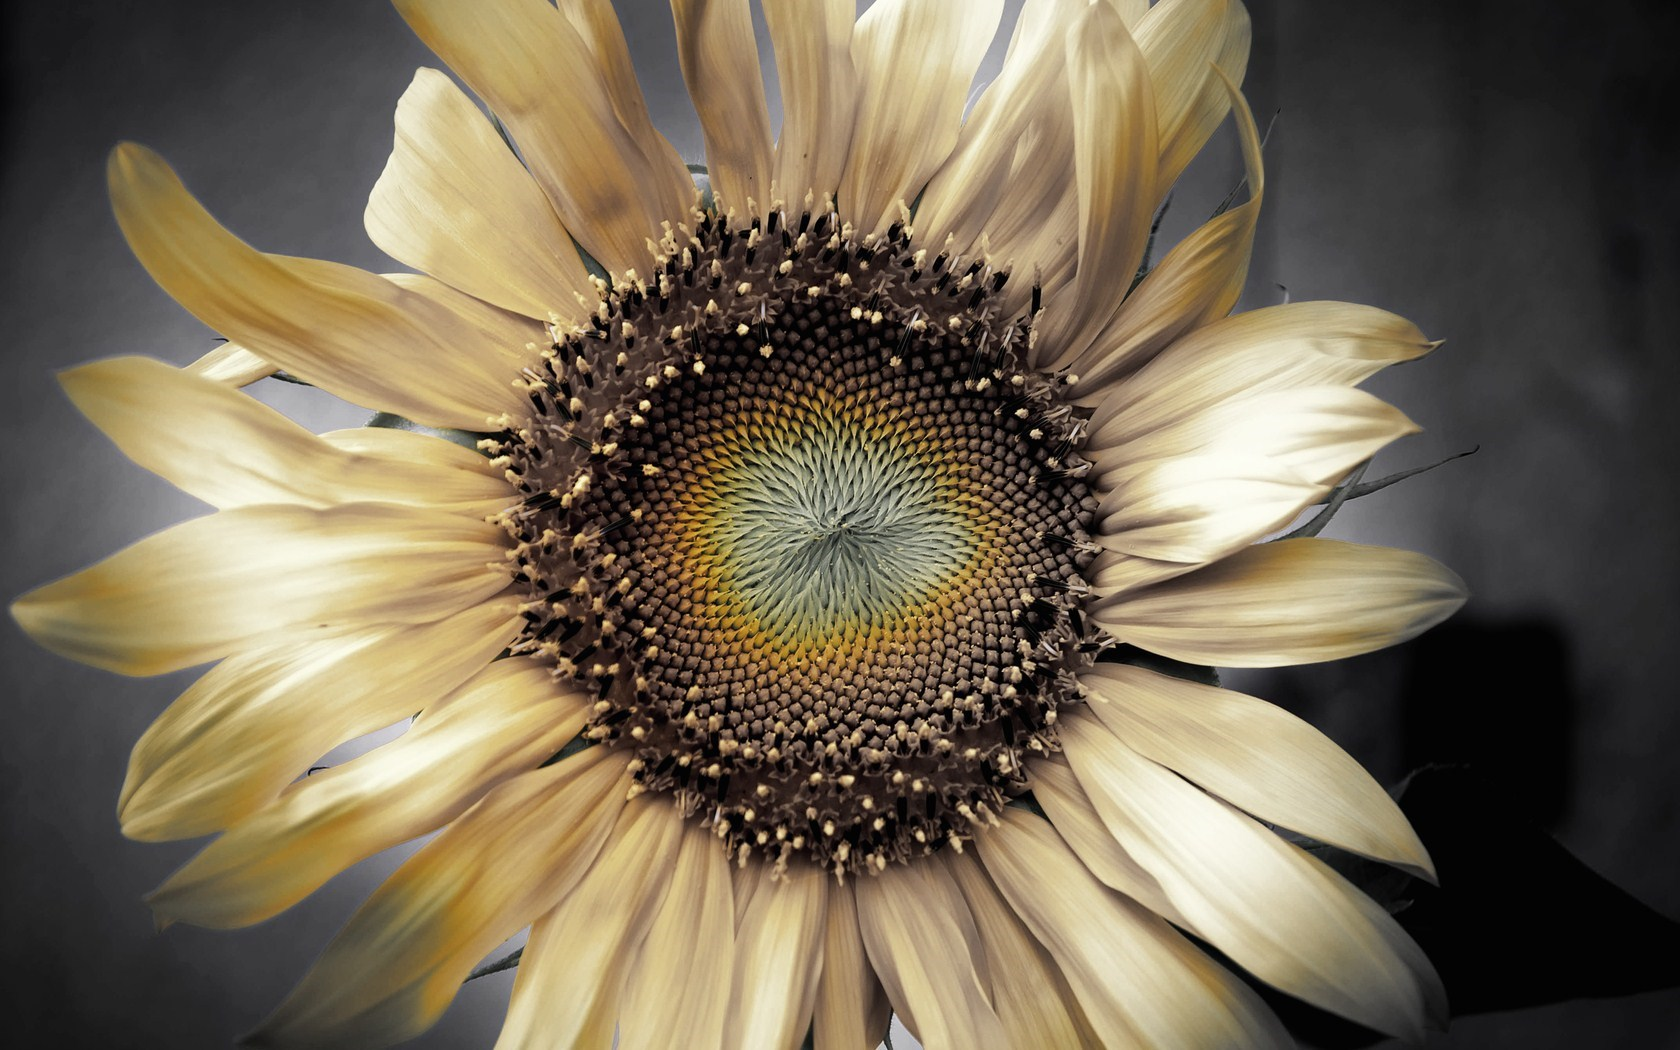 Dry Flower Sunflower Petals Photo